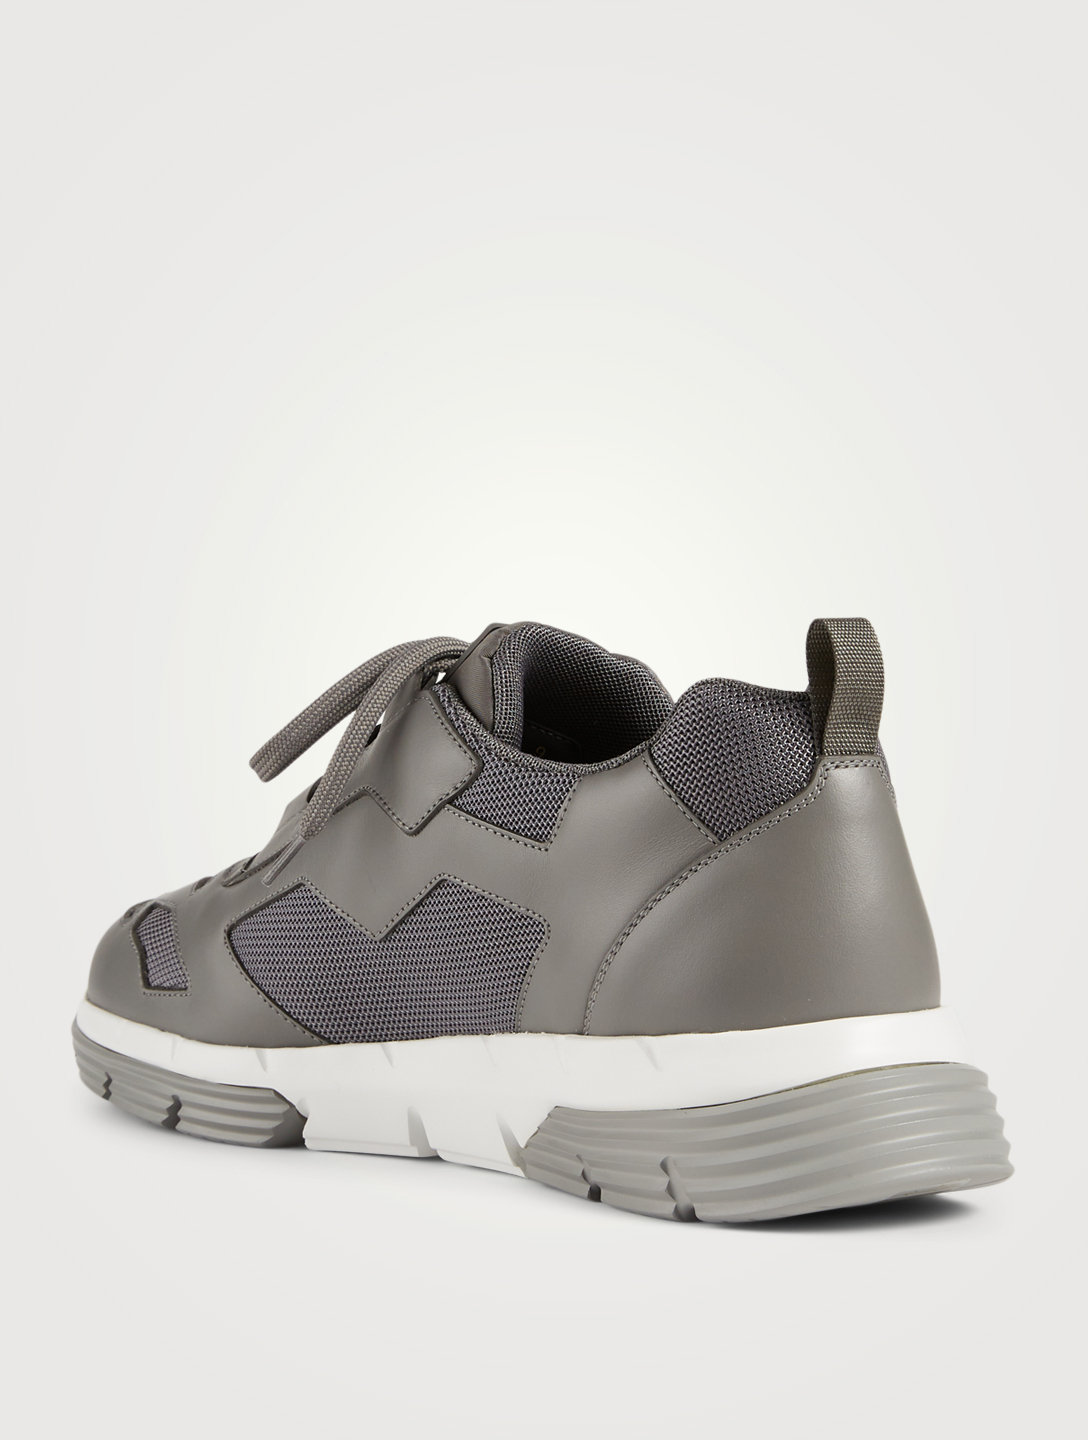 PRADA Twist Technical Fabric And Leather Sneakers Men's Grey